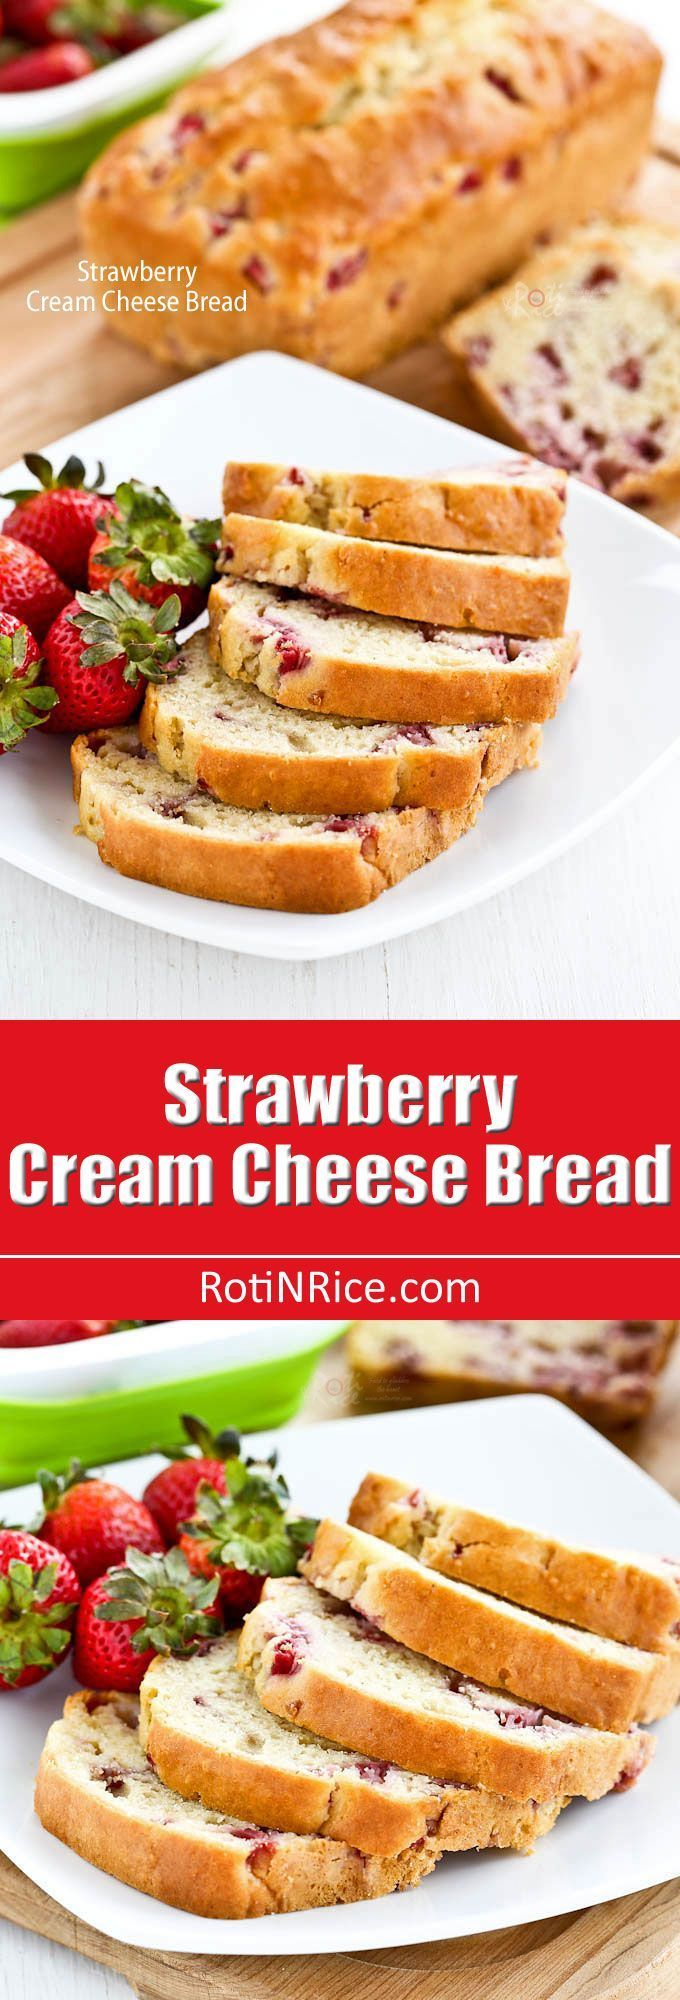 This lovely Strawberry Cream Cheese Bread has a super moist and creamy texture. A must-bake when strawberries are in season!   http://RotiNRice.com